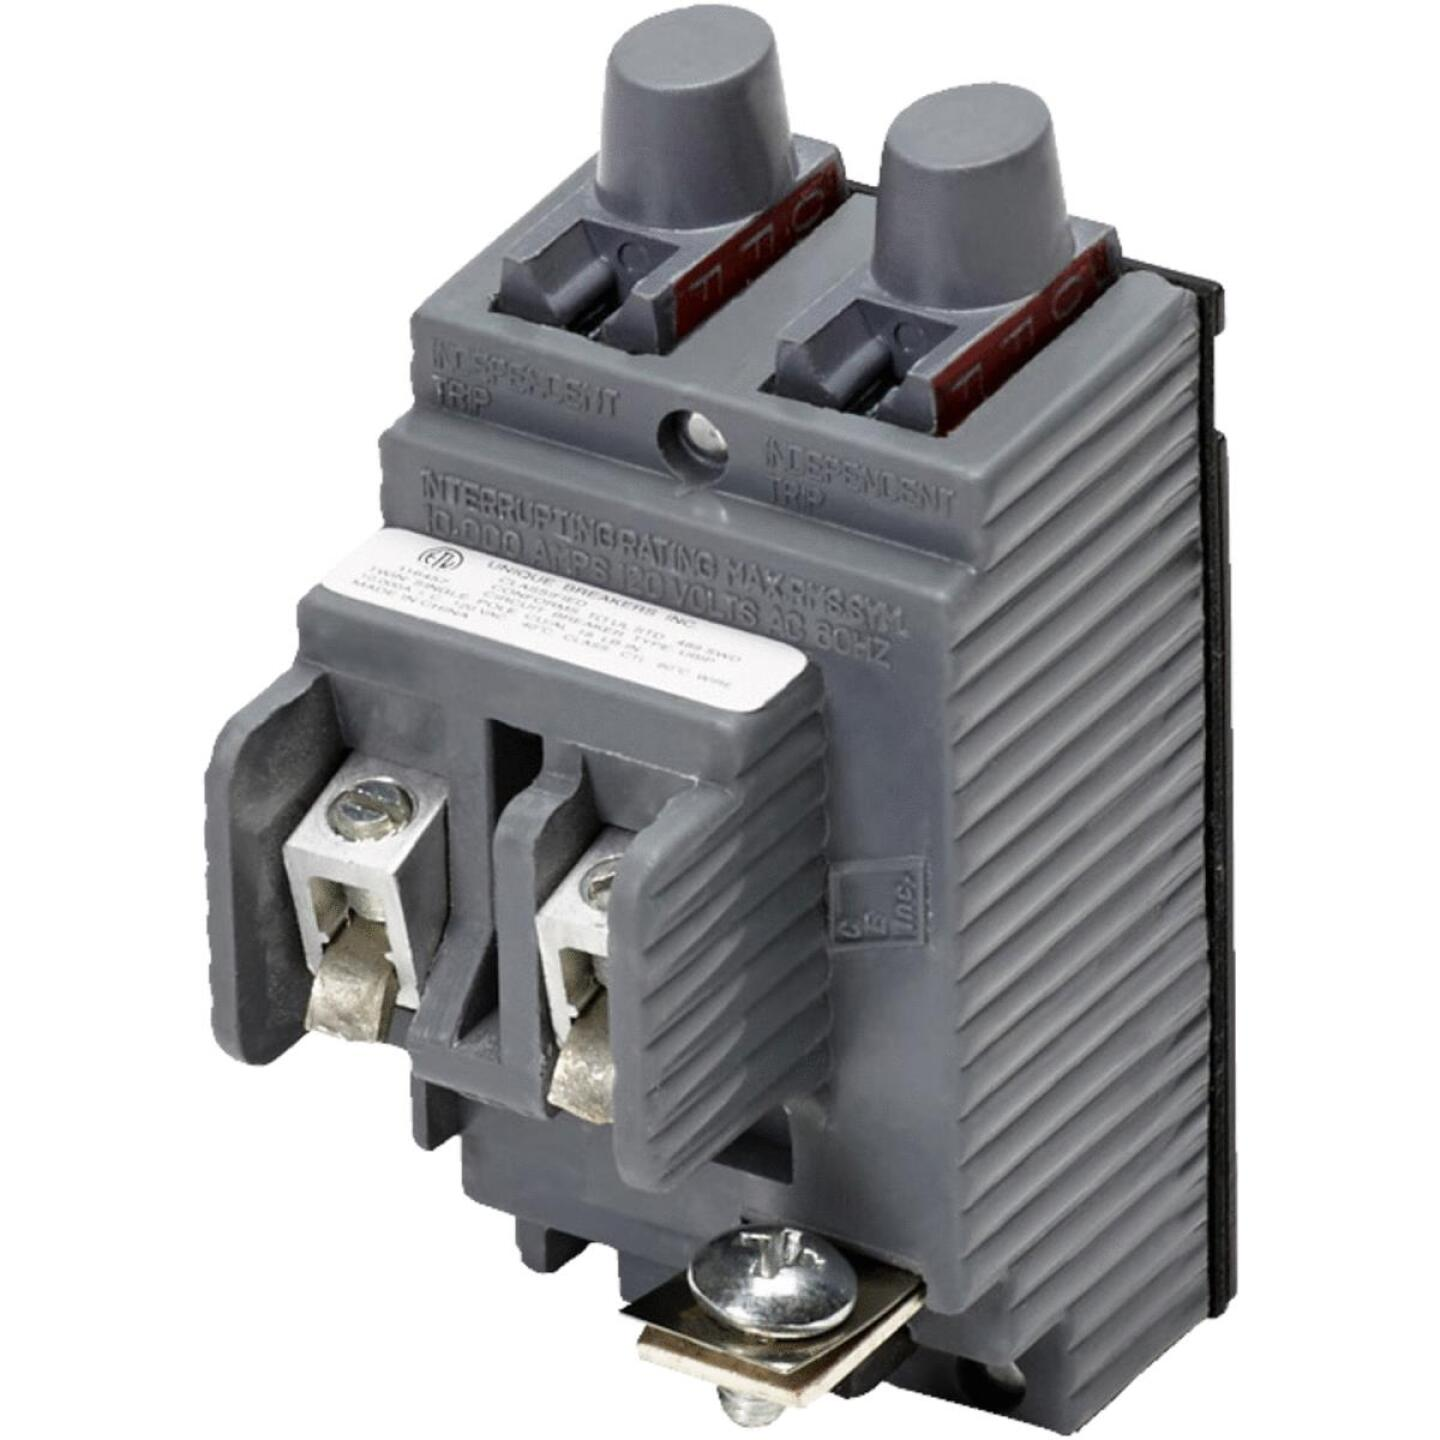 Connecticut Electric 20A/20A Twin Single-Pole Standard Trip Packaged Replacement Circuit Breaker For Pushmatic Image 1